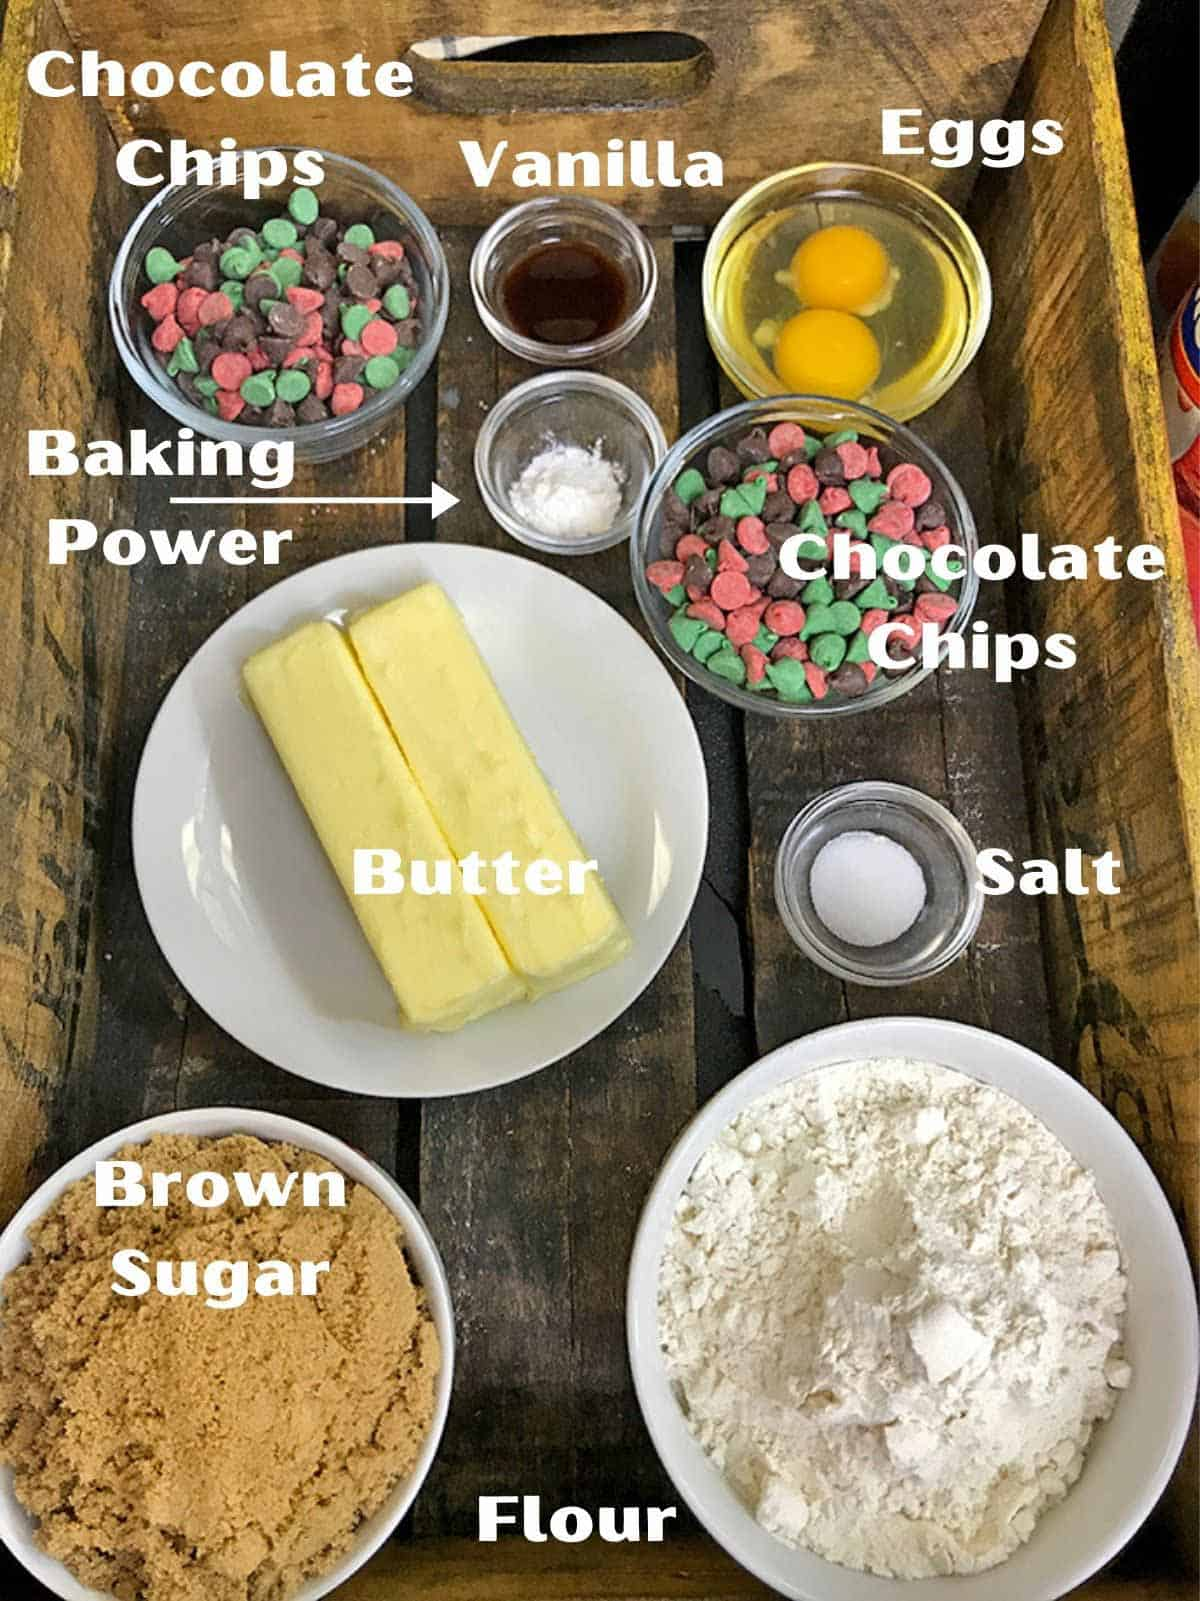 Butter, flour, chocolate chips and other baking ingredients.